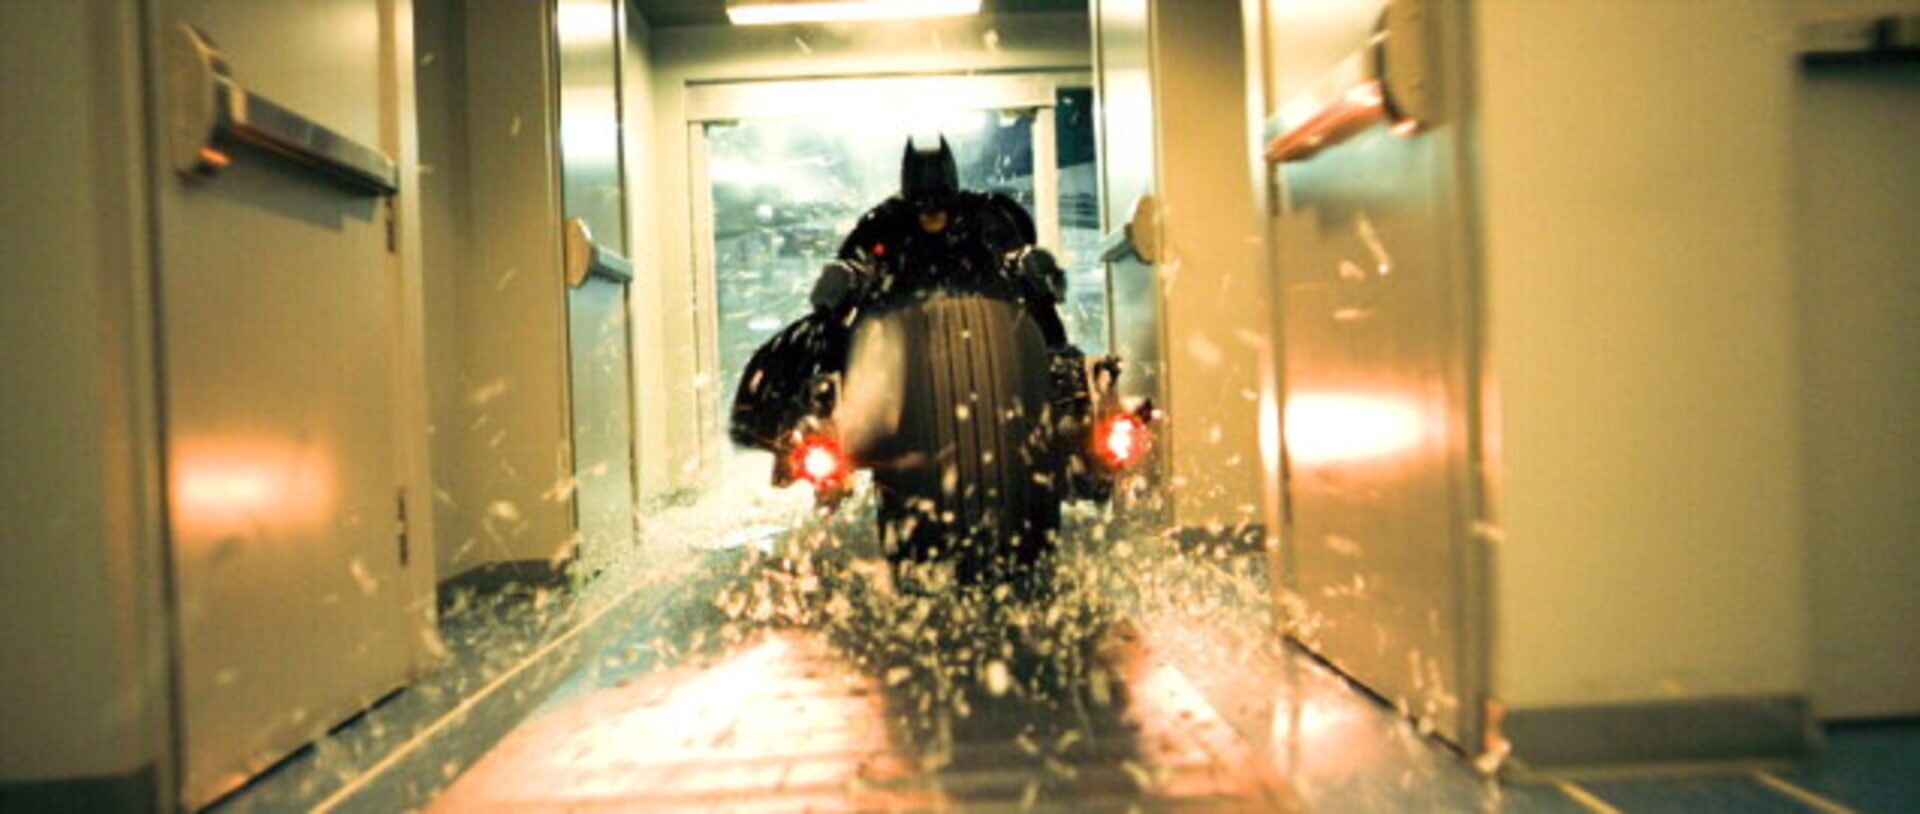 The Dark Knight - Image 41